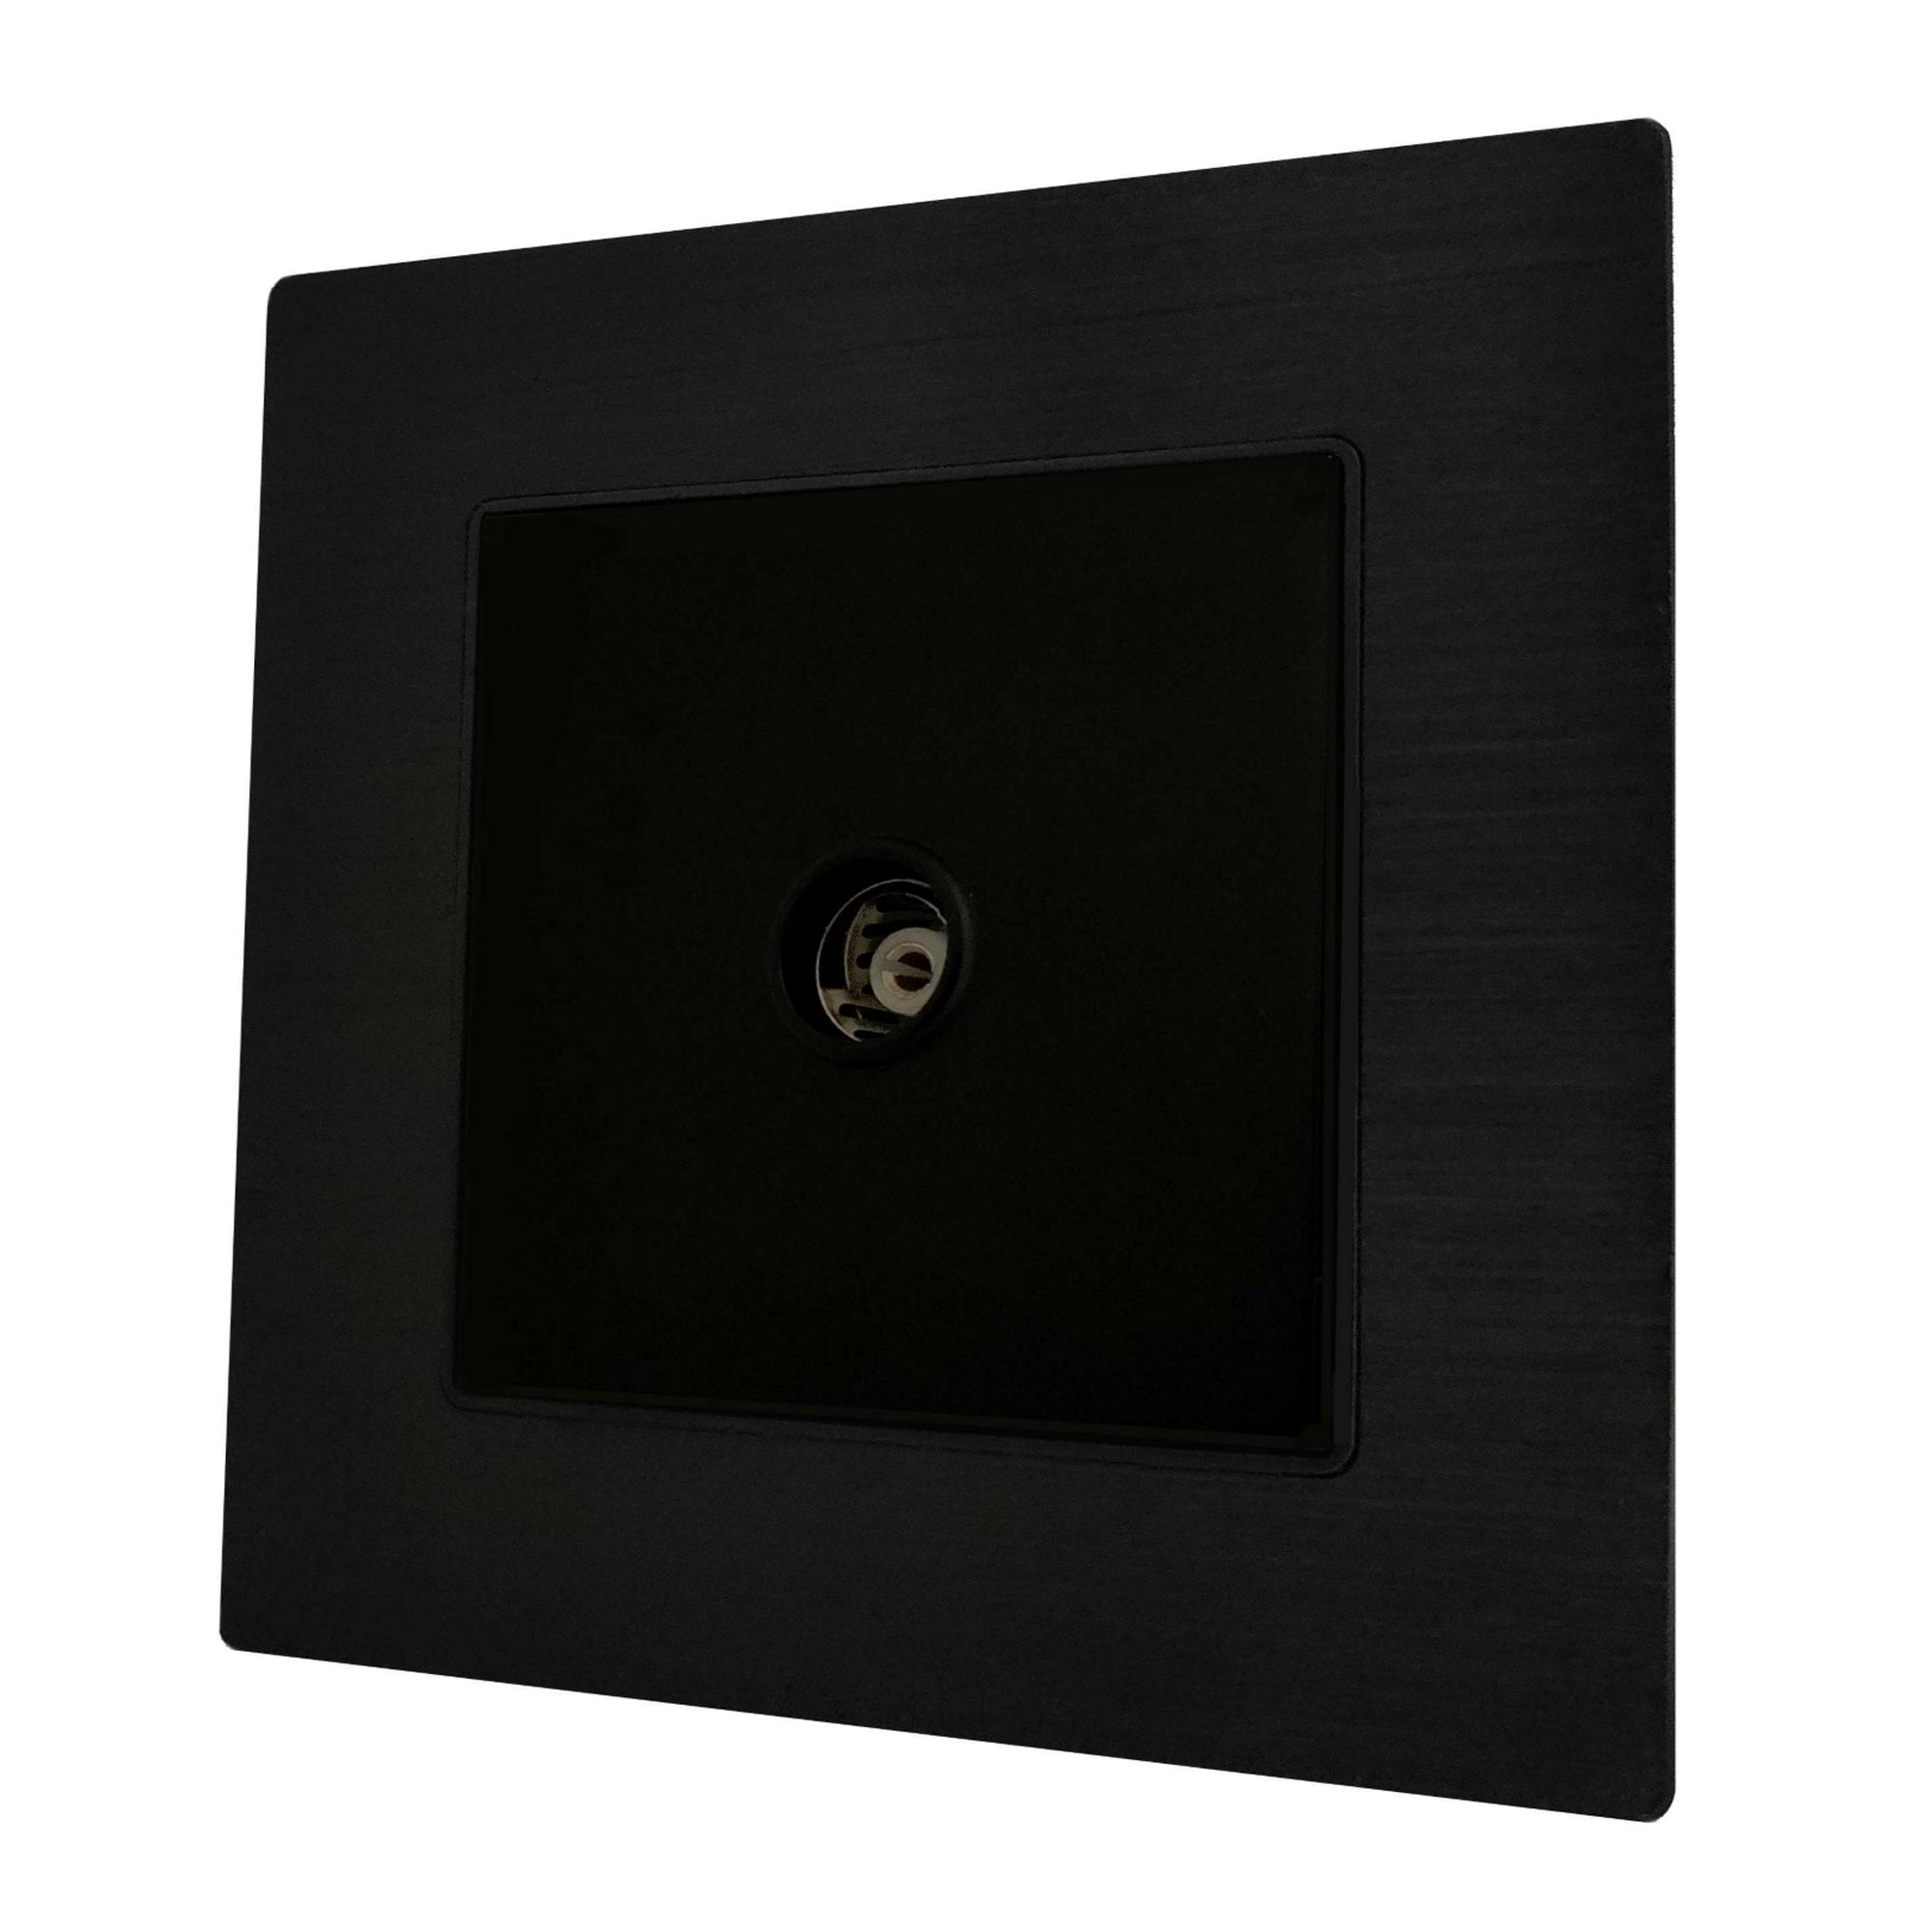 Single TV Antenna Wall Socket Coaxial Female in Black Brushed Alum Frame & Black Centre